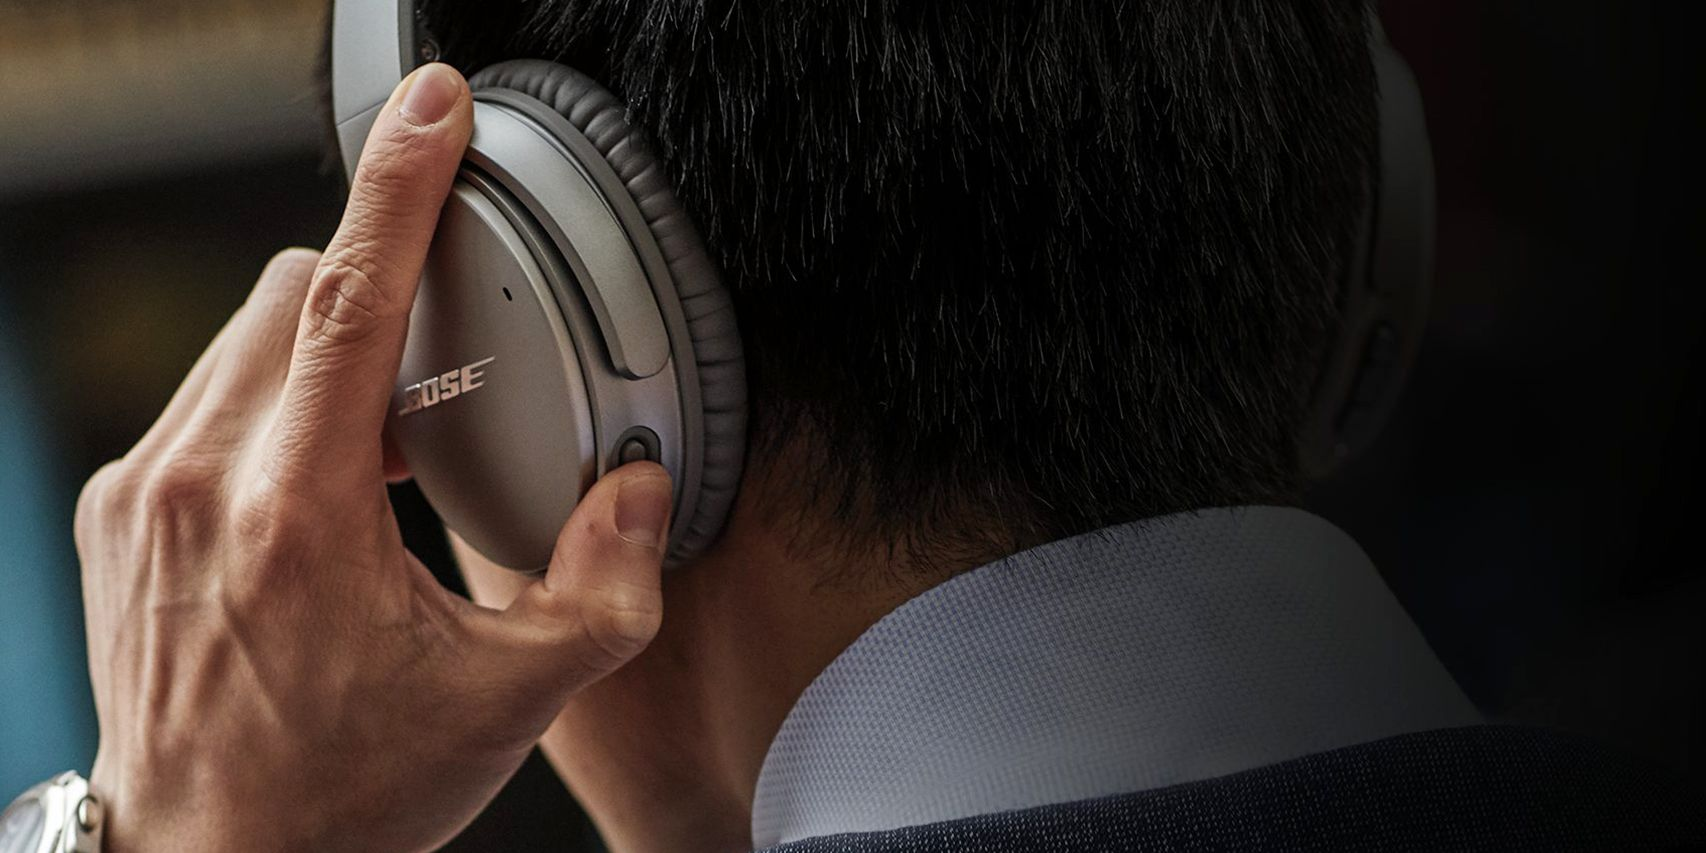 Bose QC35 Series II headphones